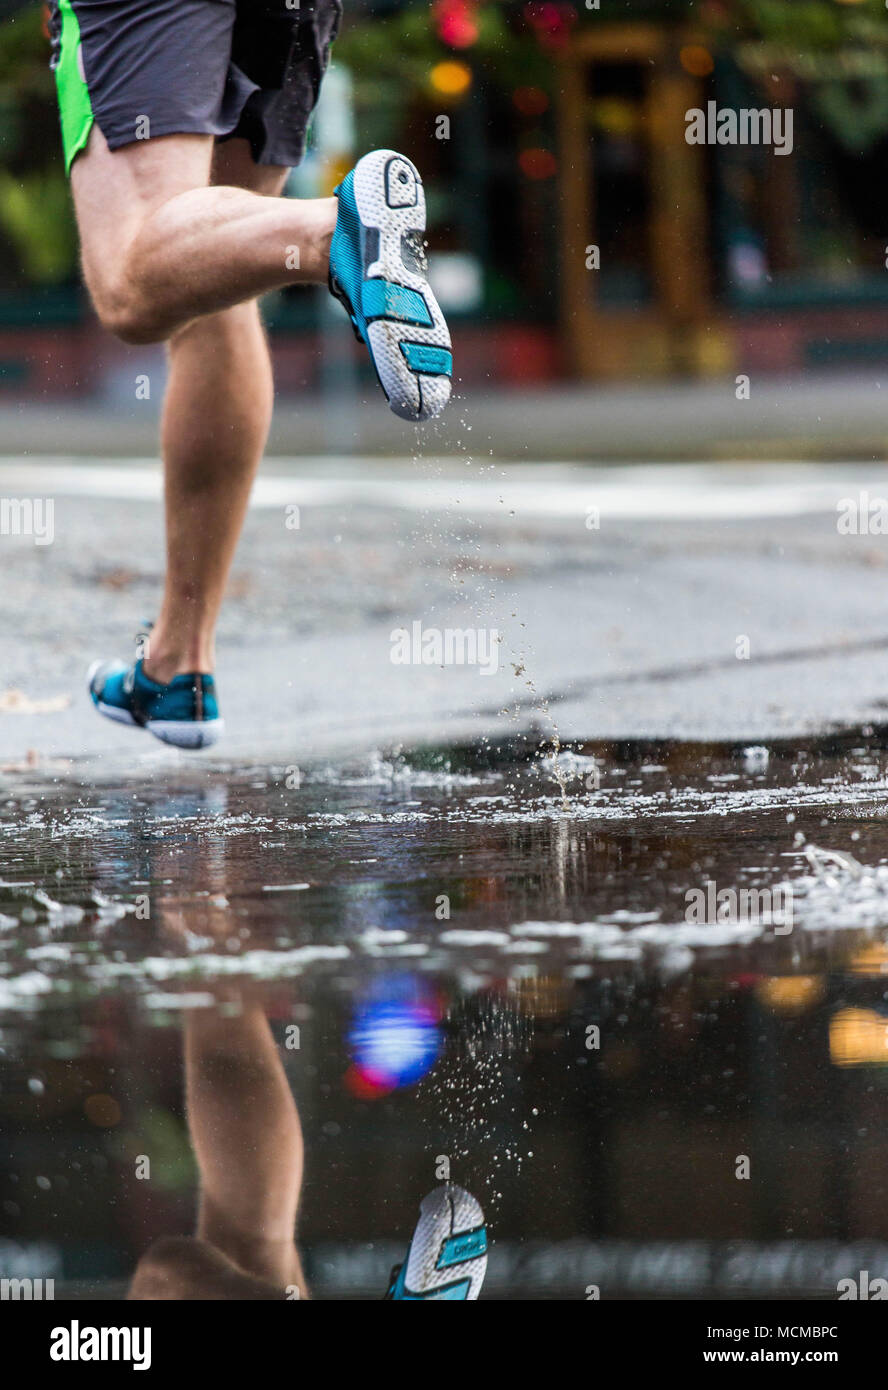 Low section of runner jogging in street, Pioneer Square, Seattle, Washington State, USA - Stock Image